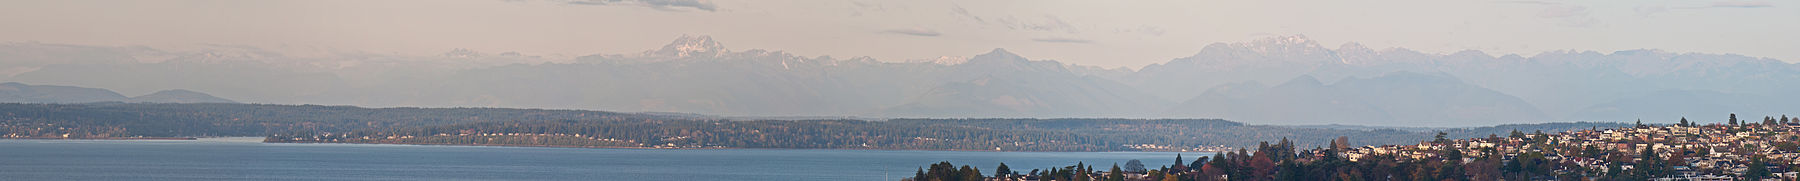 Panorama of the Olympic Mountain Range as seen from Queen Anne Hill.